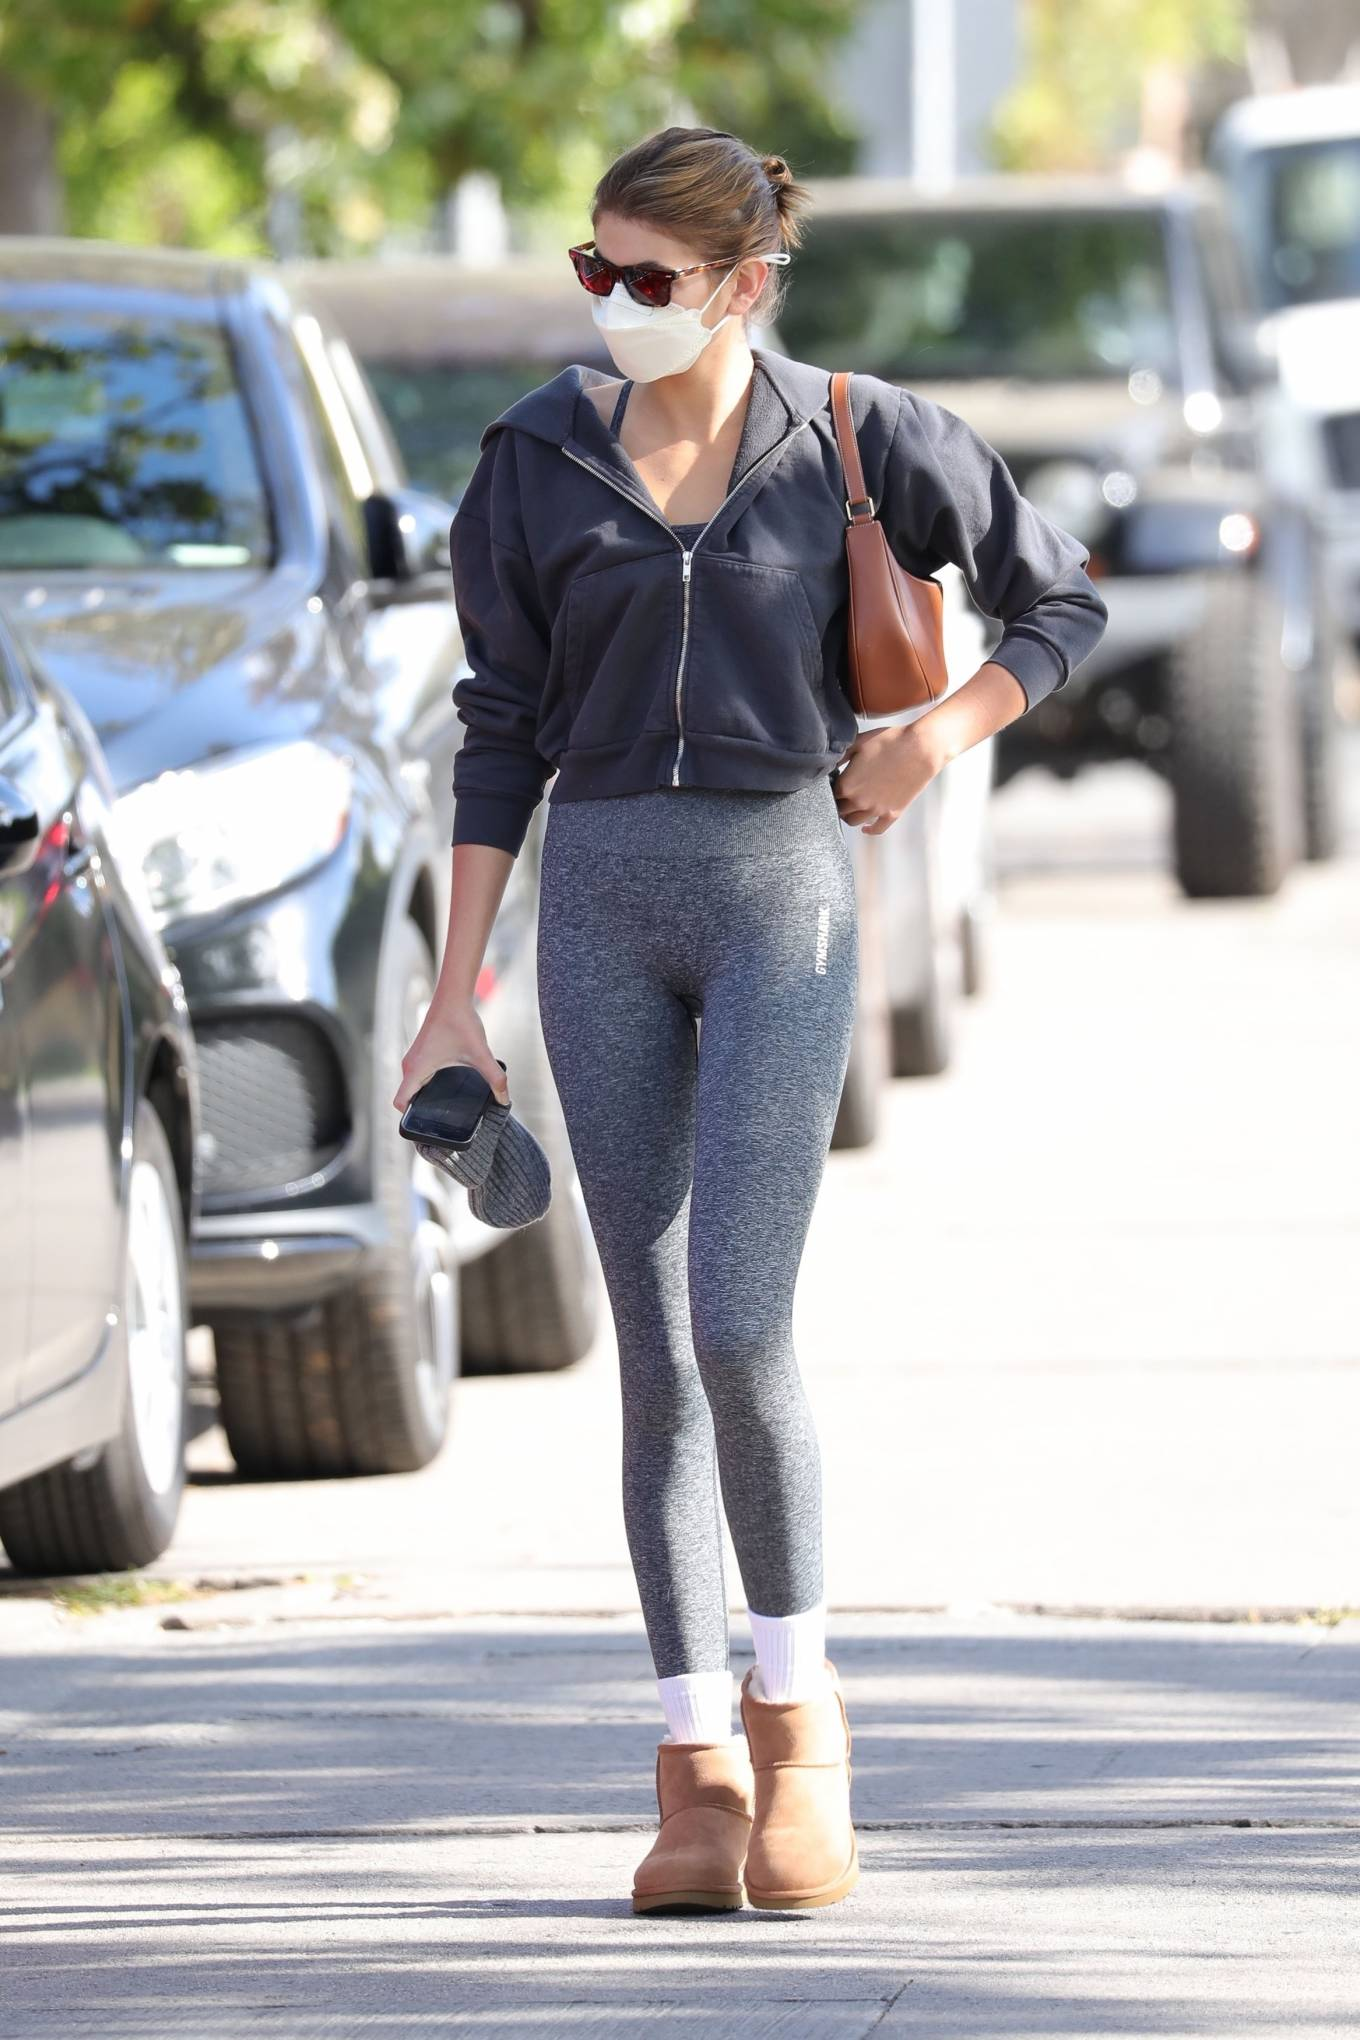 Kaia Gerber donning round chestnut brown Ugg ankle boots with flat heel